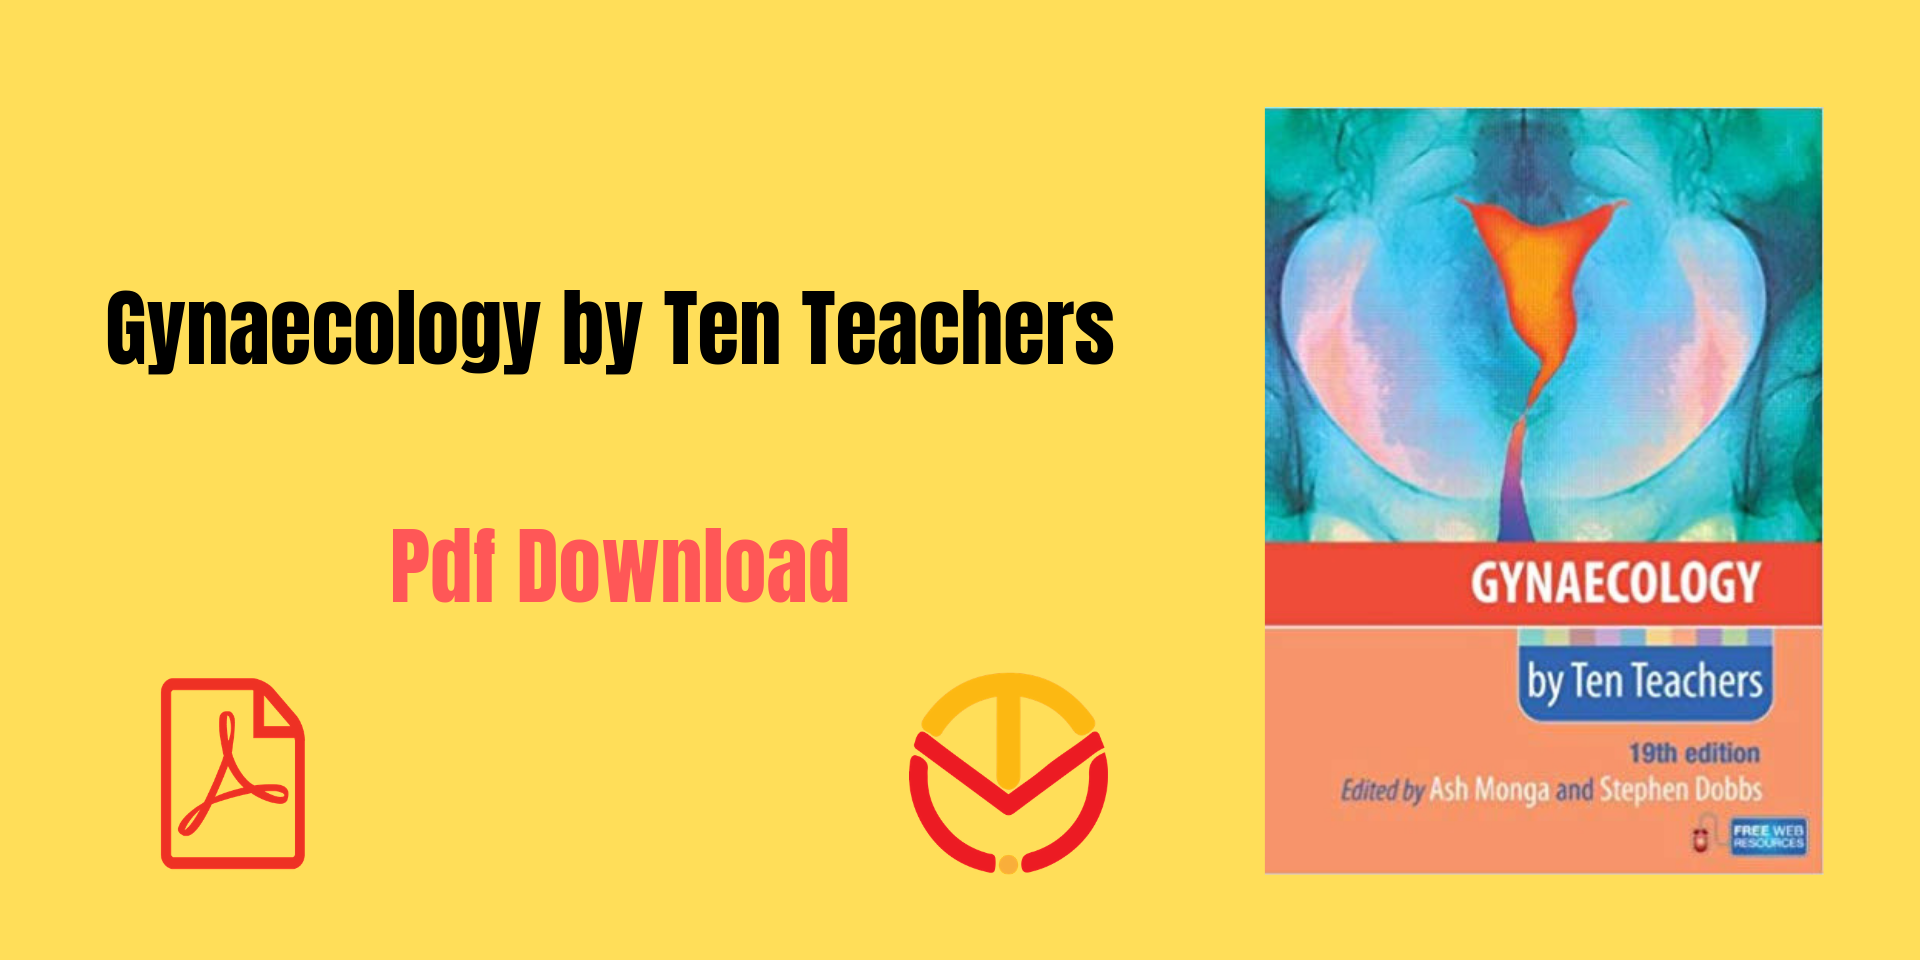 Gynaecology by Ten Teachers pdf